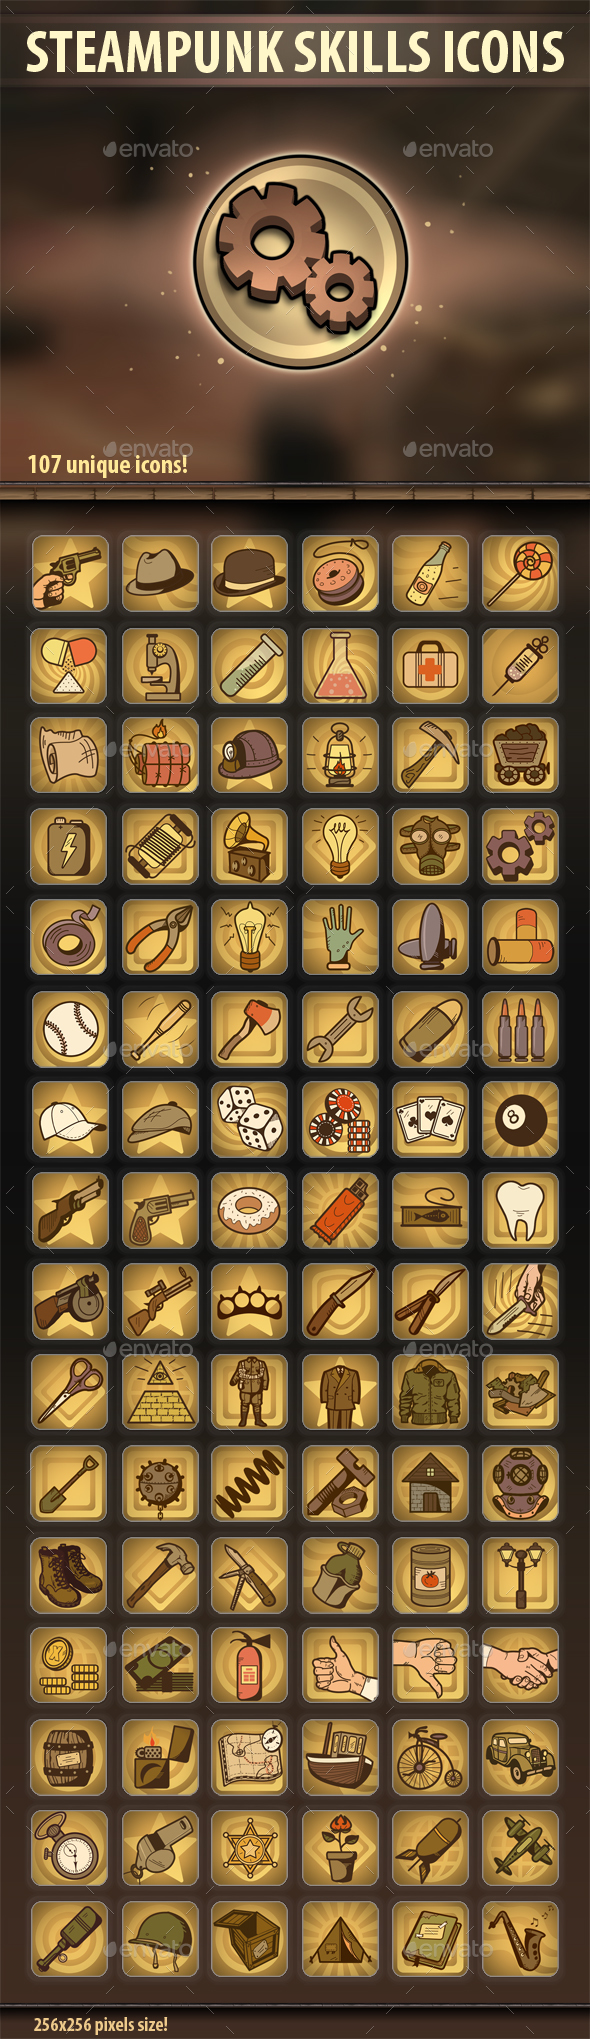 Steampunk Skills Icons - Miscellaneous Game Assets